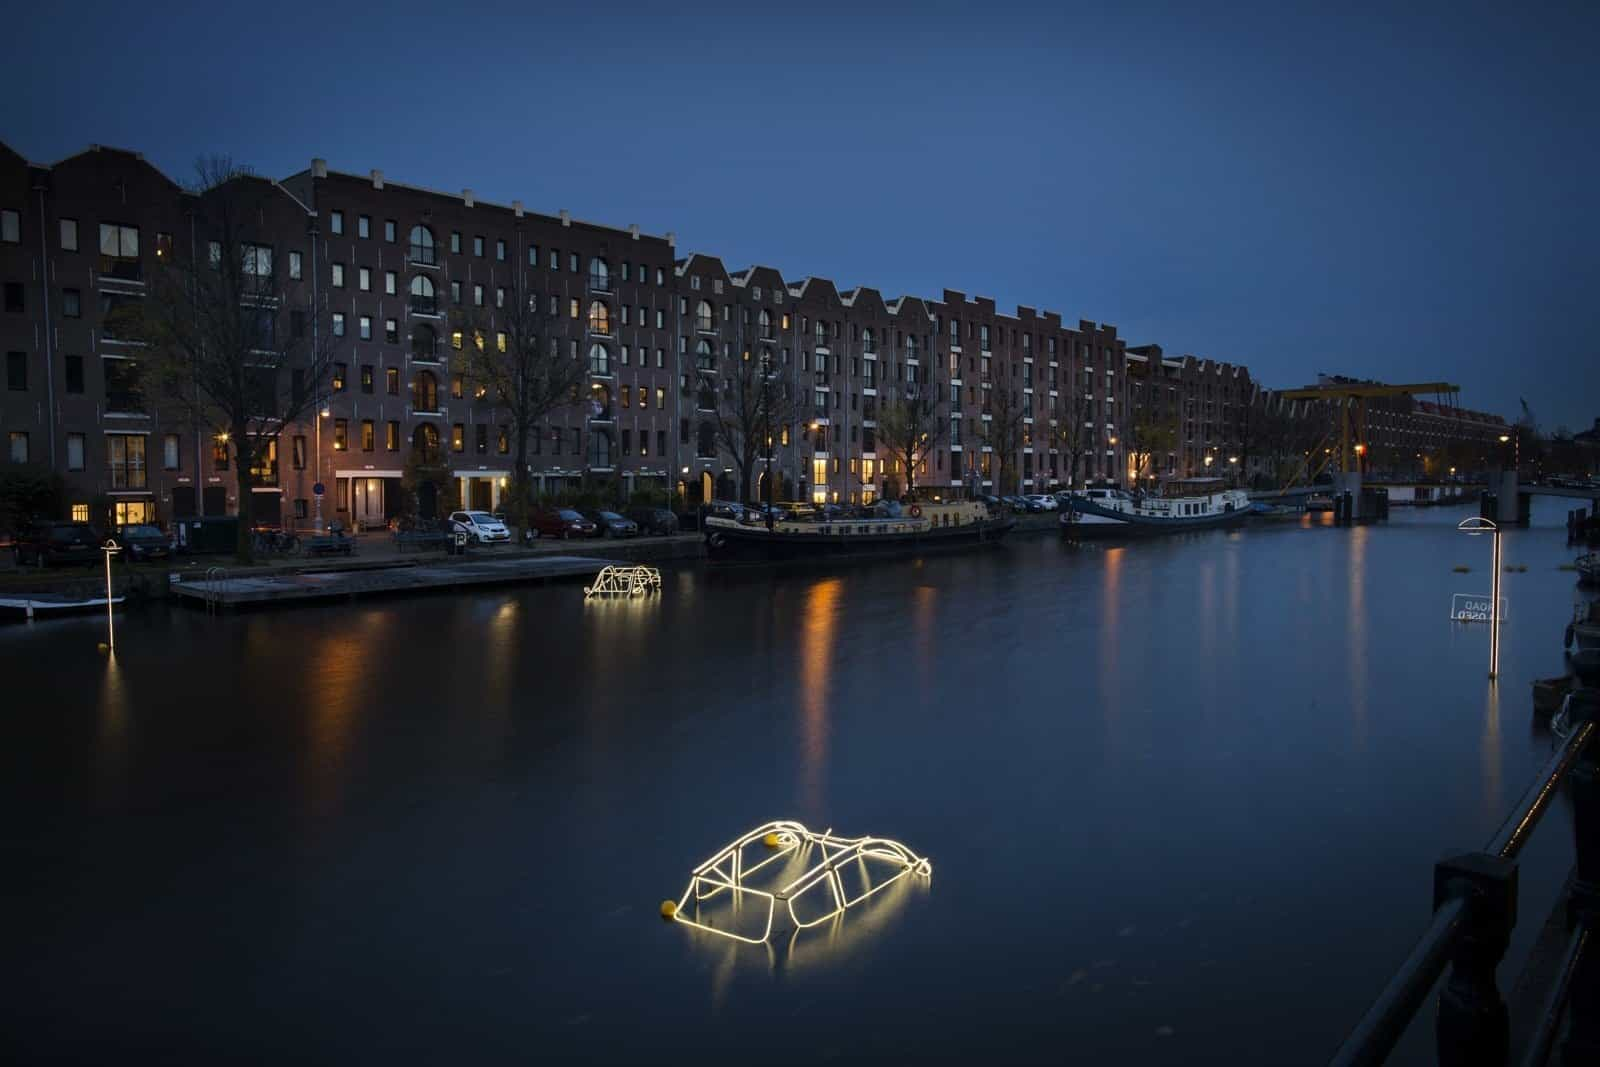 Surface Tension by Tom Biddulph _ Barbara Ryan - Amsterdam Light Festival 2019 - Photo Copyright Janus van den Eijnden (2)